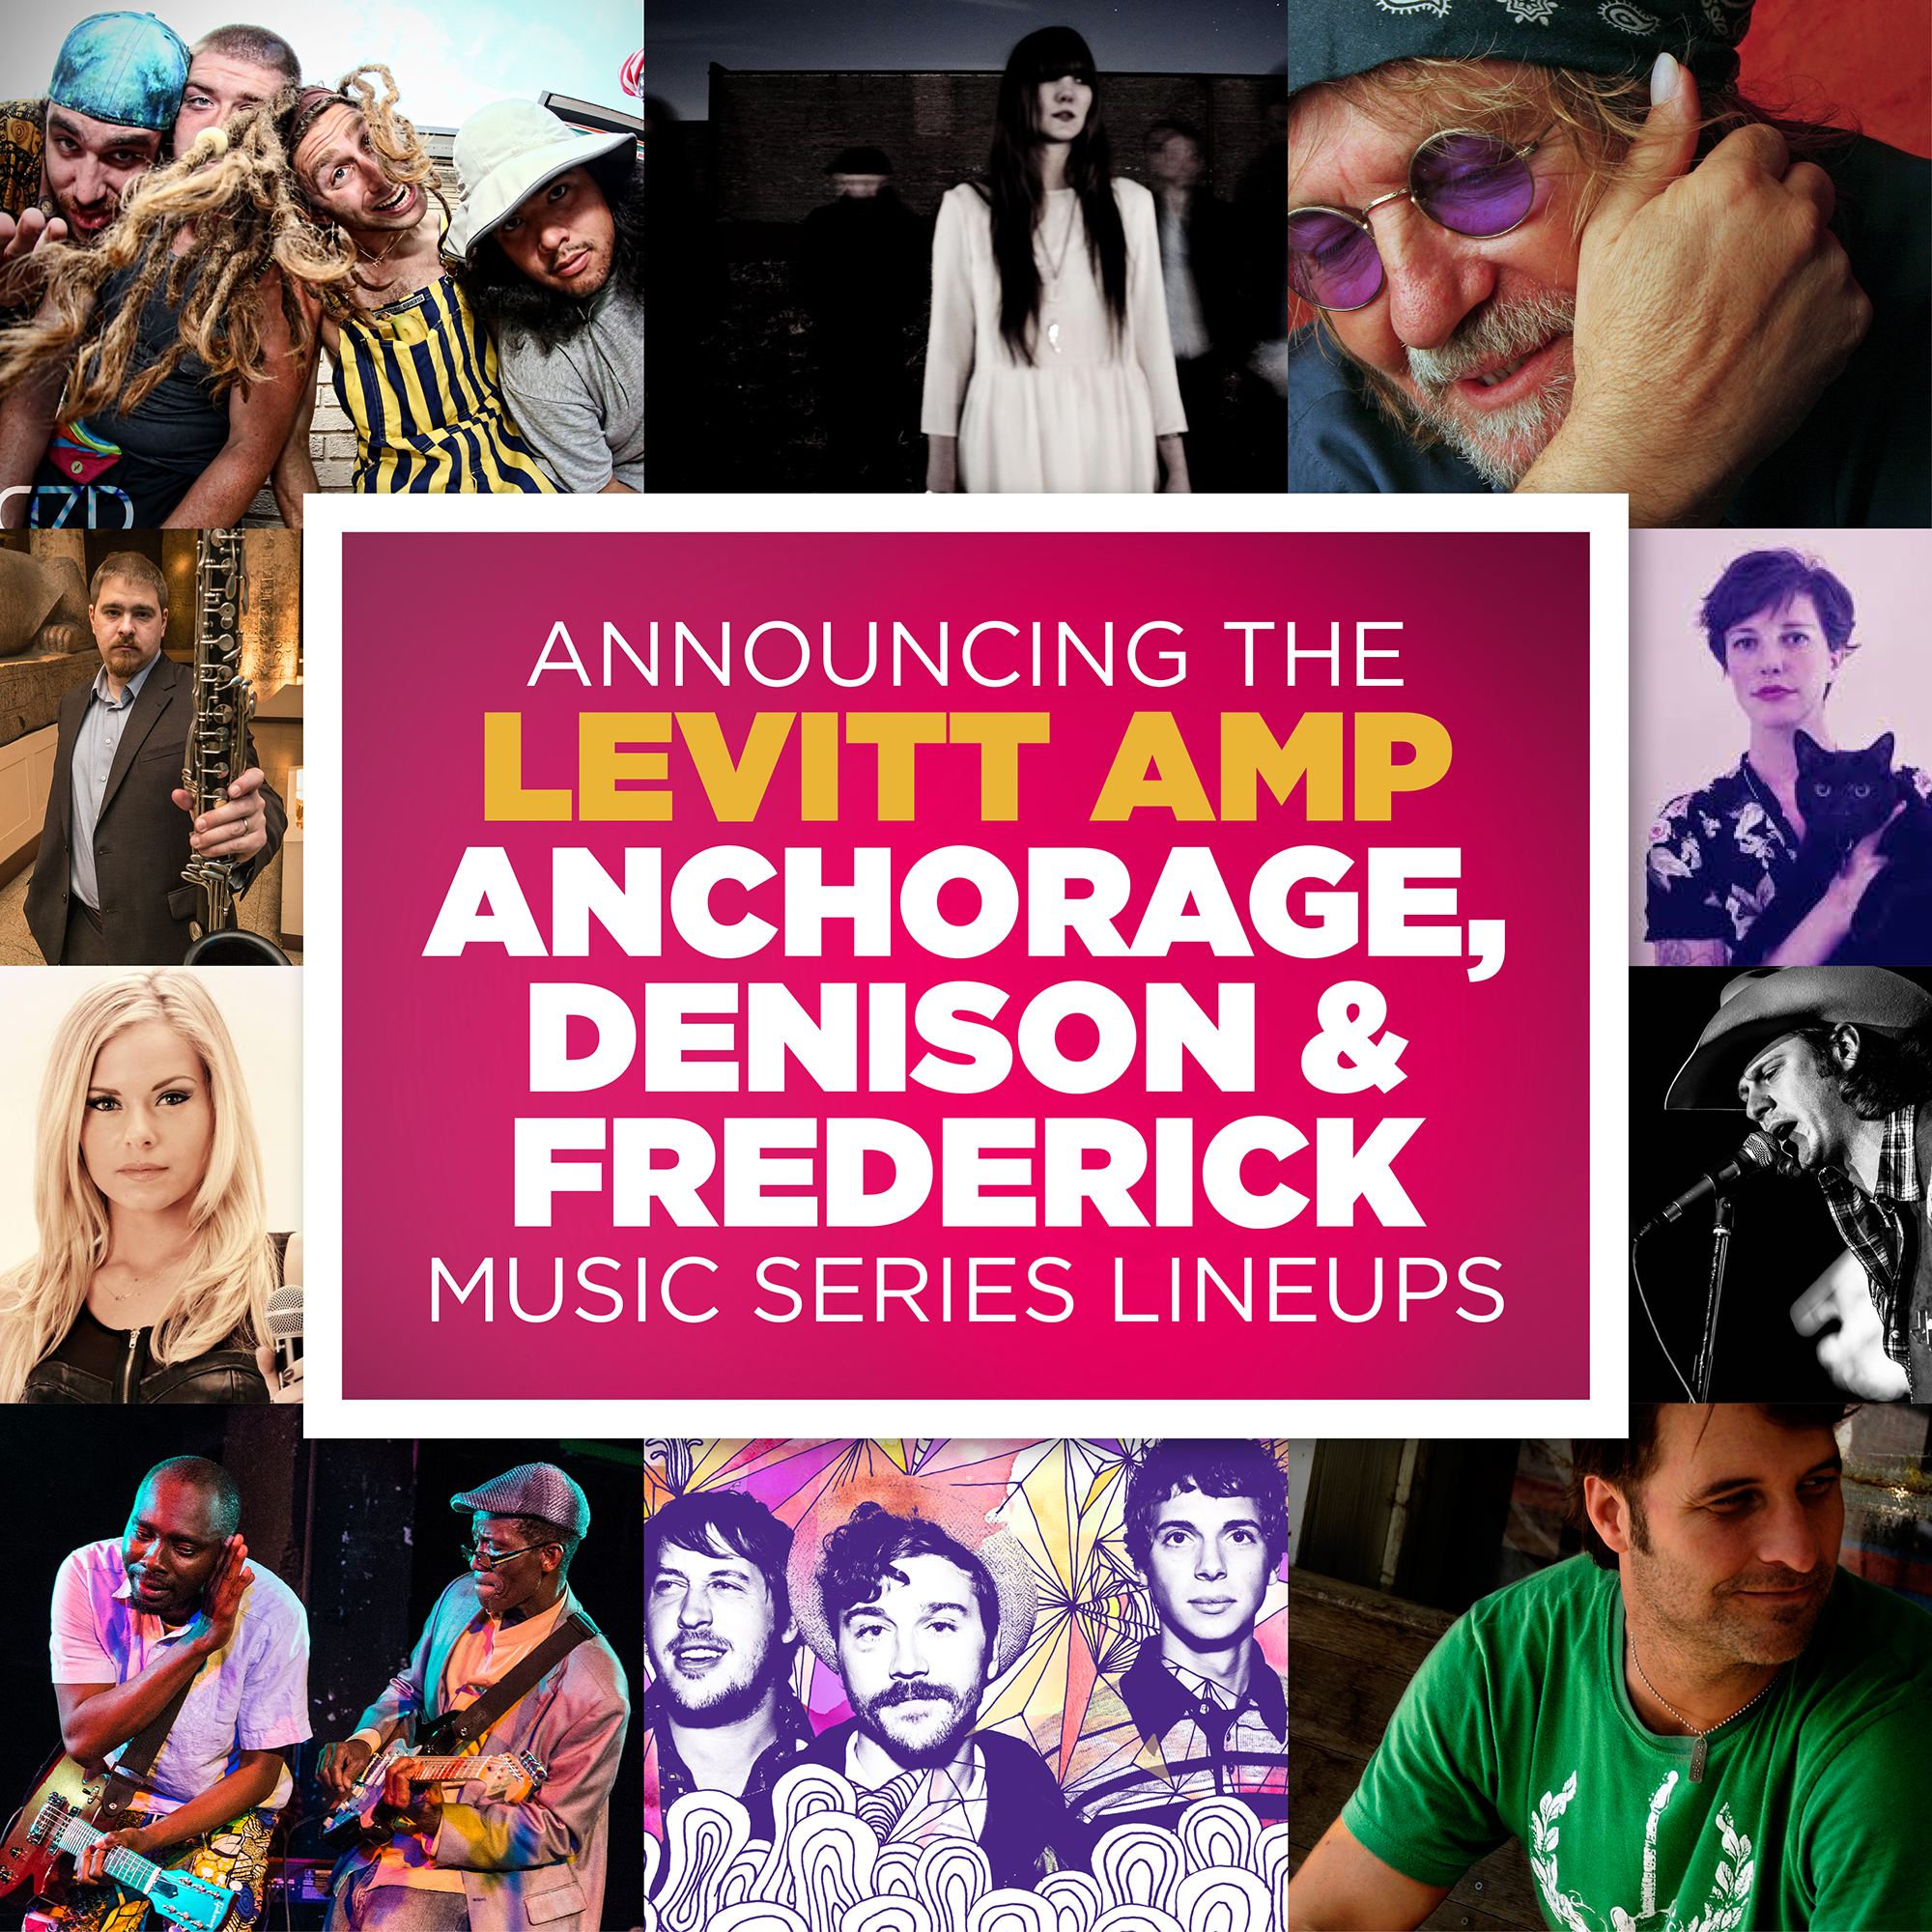 Check out the artist lineups for the Levitt AMP Anchorage, Denison and Frederick Music Series!